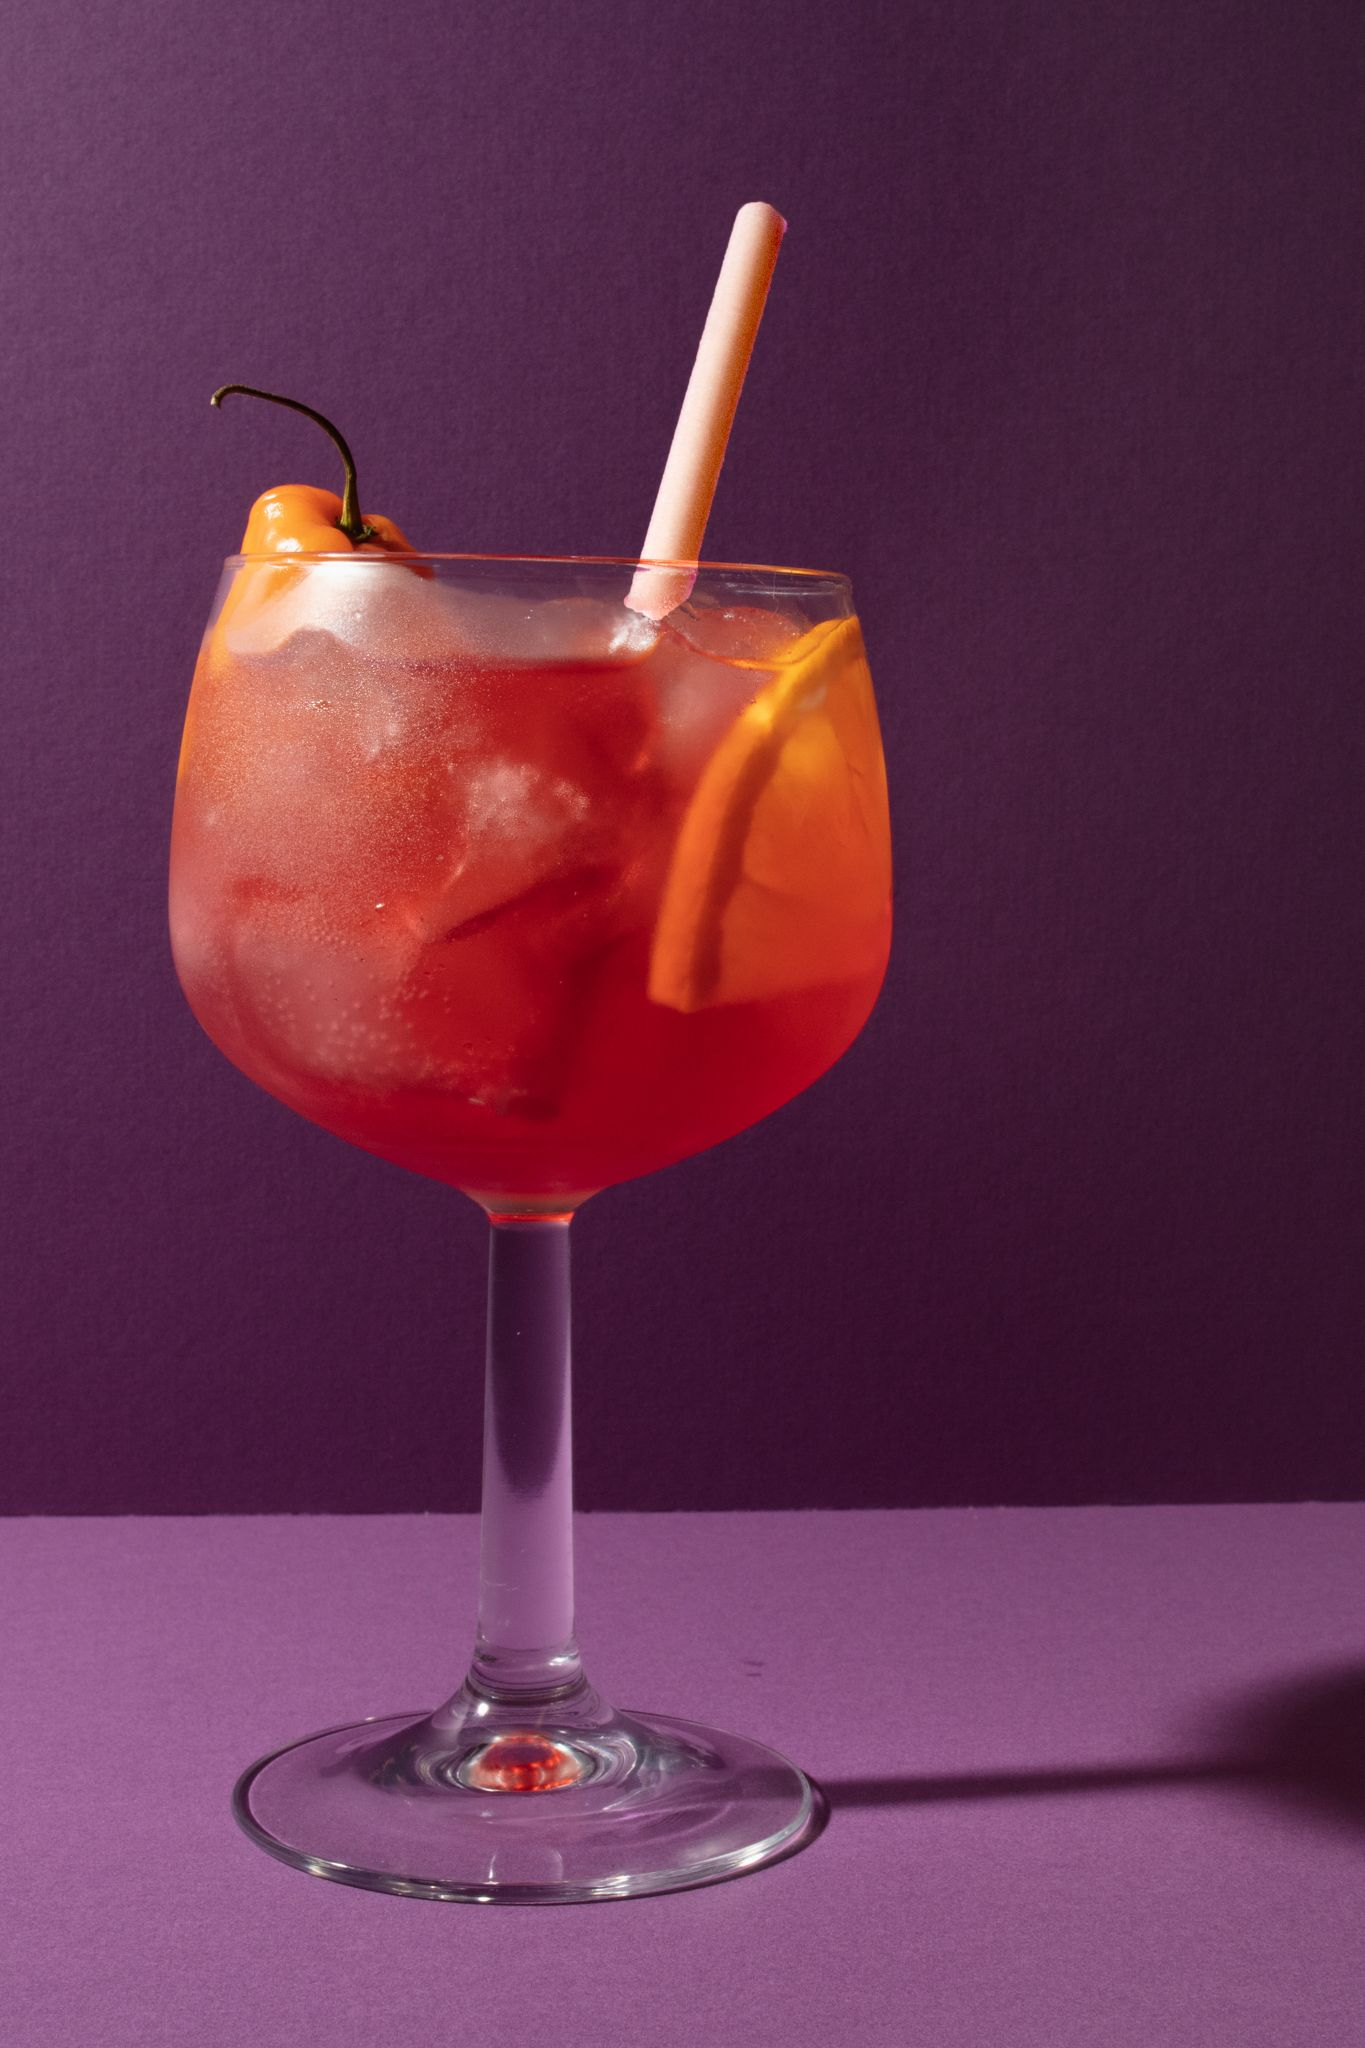 Sip Your Cocktail Through An Eco Friendly Straw Help The Environment Have Excuses To Drink More In 2020 Fruity Mixed Drinks Fruity Drinks Sweet Cocktails